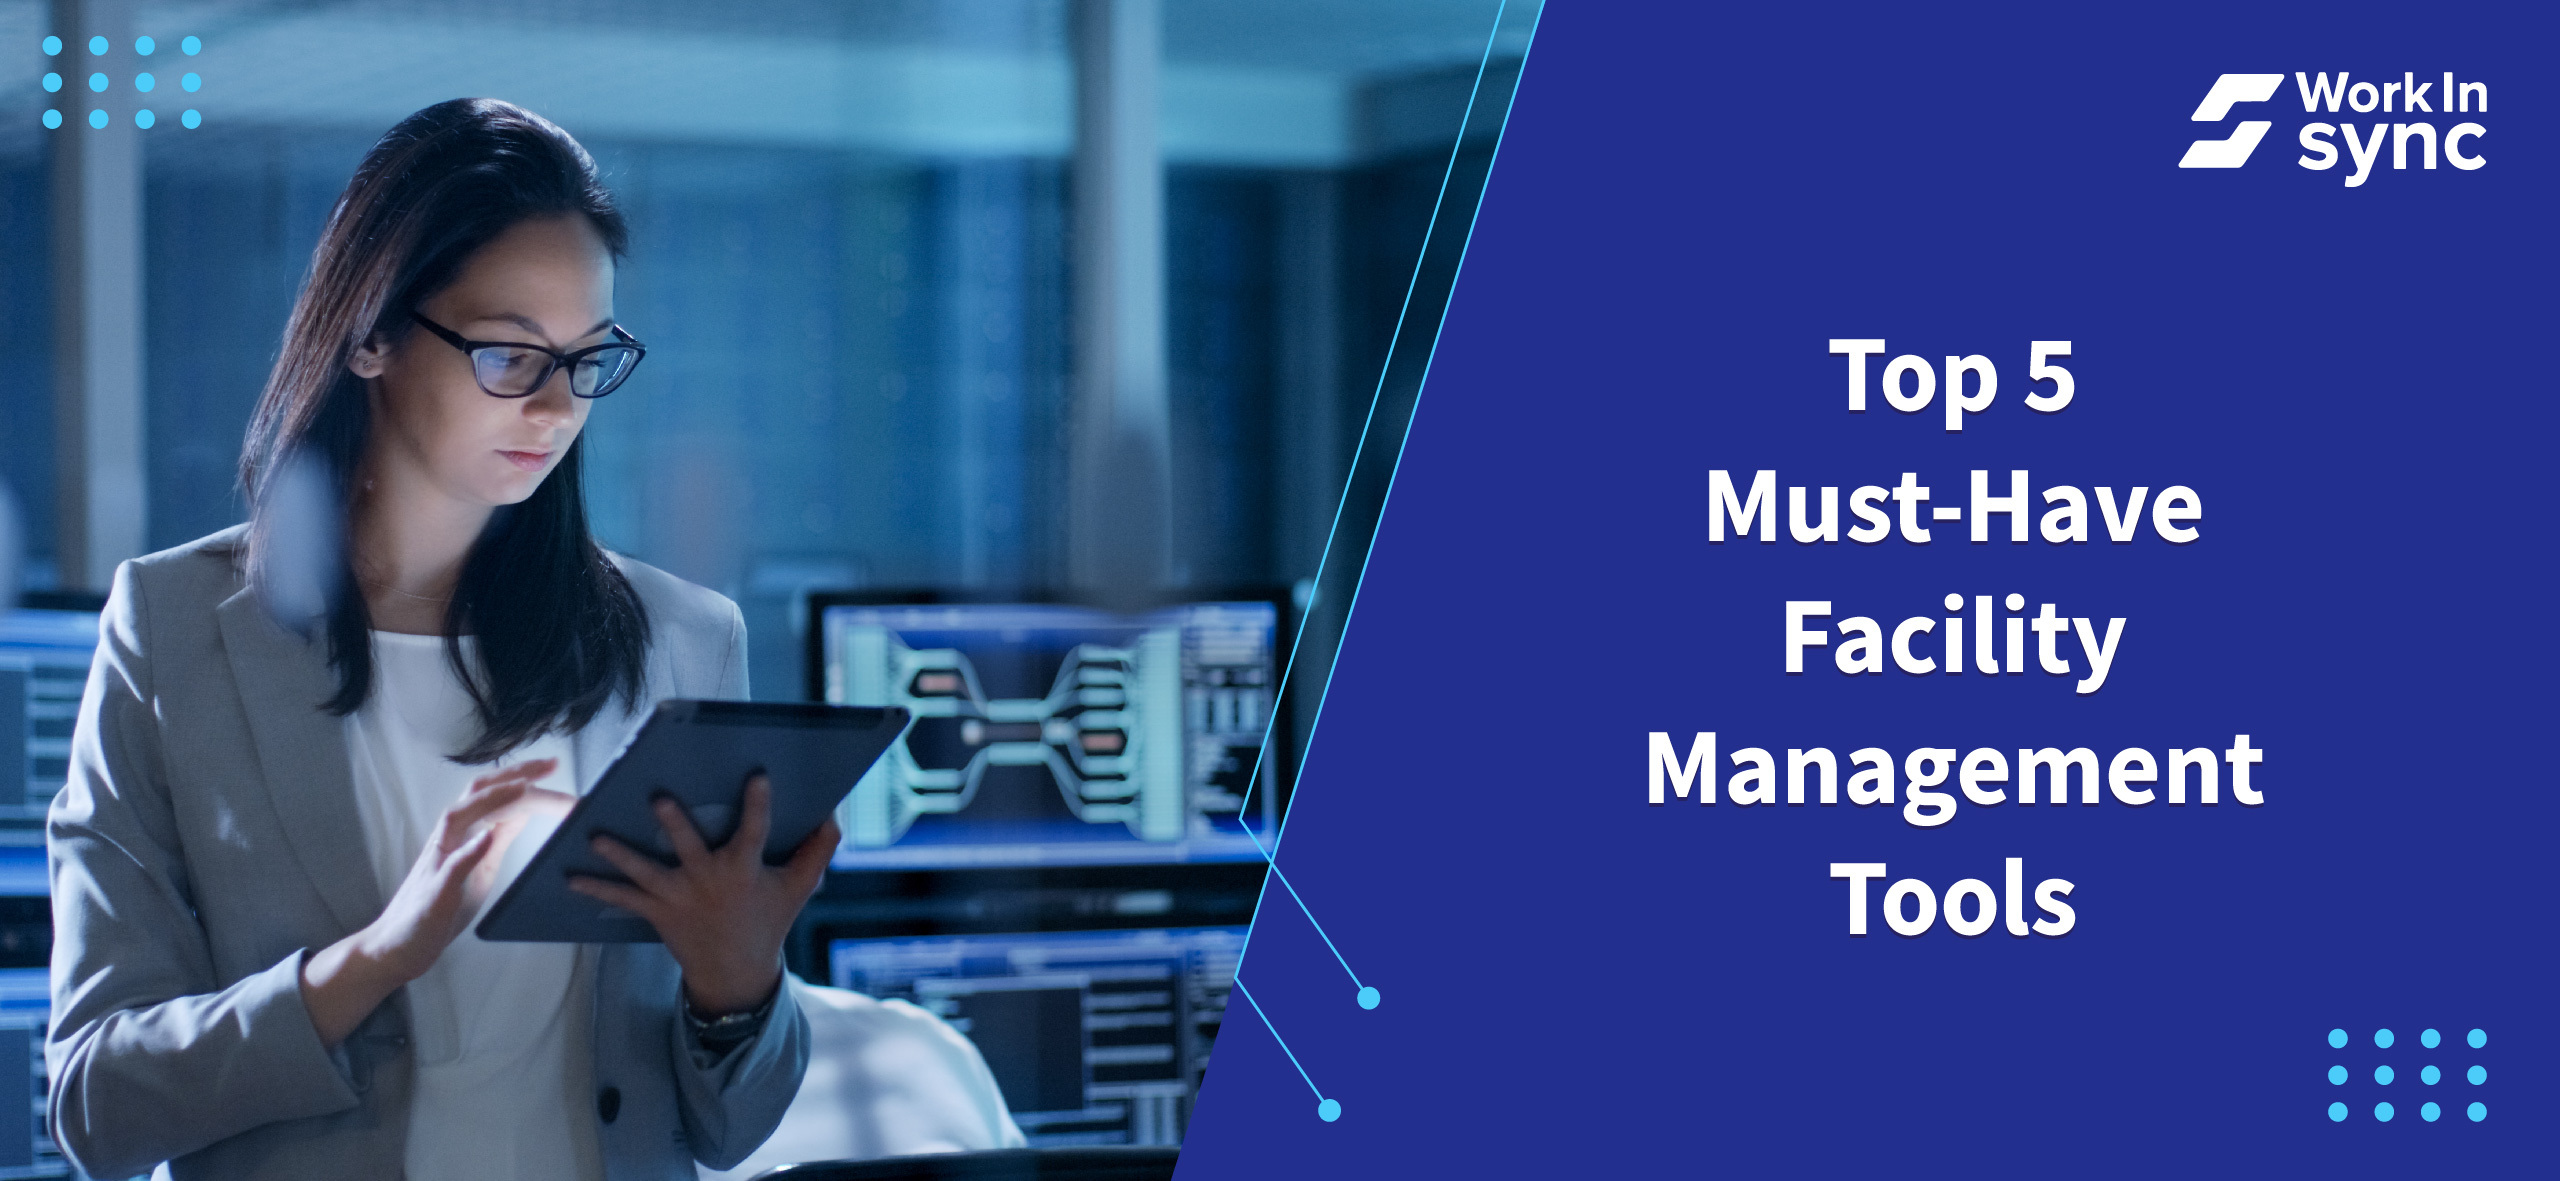 Top 5 Must-Have Facility Management Tools